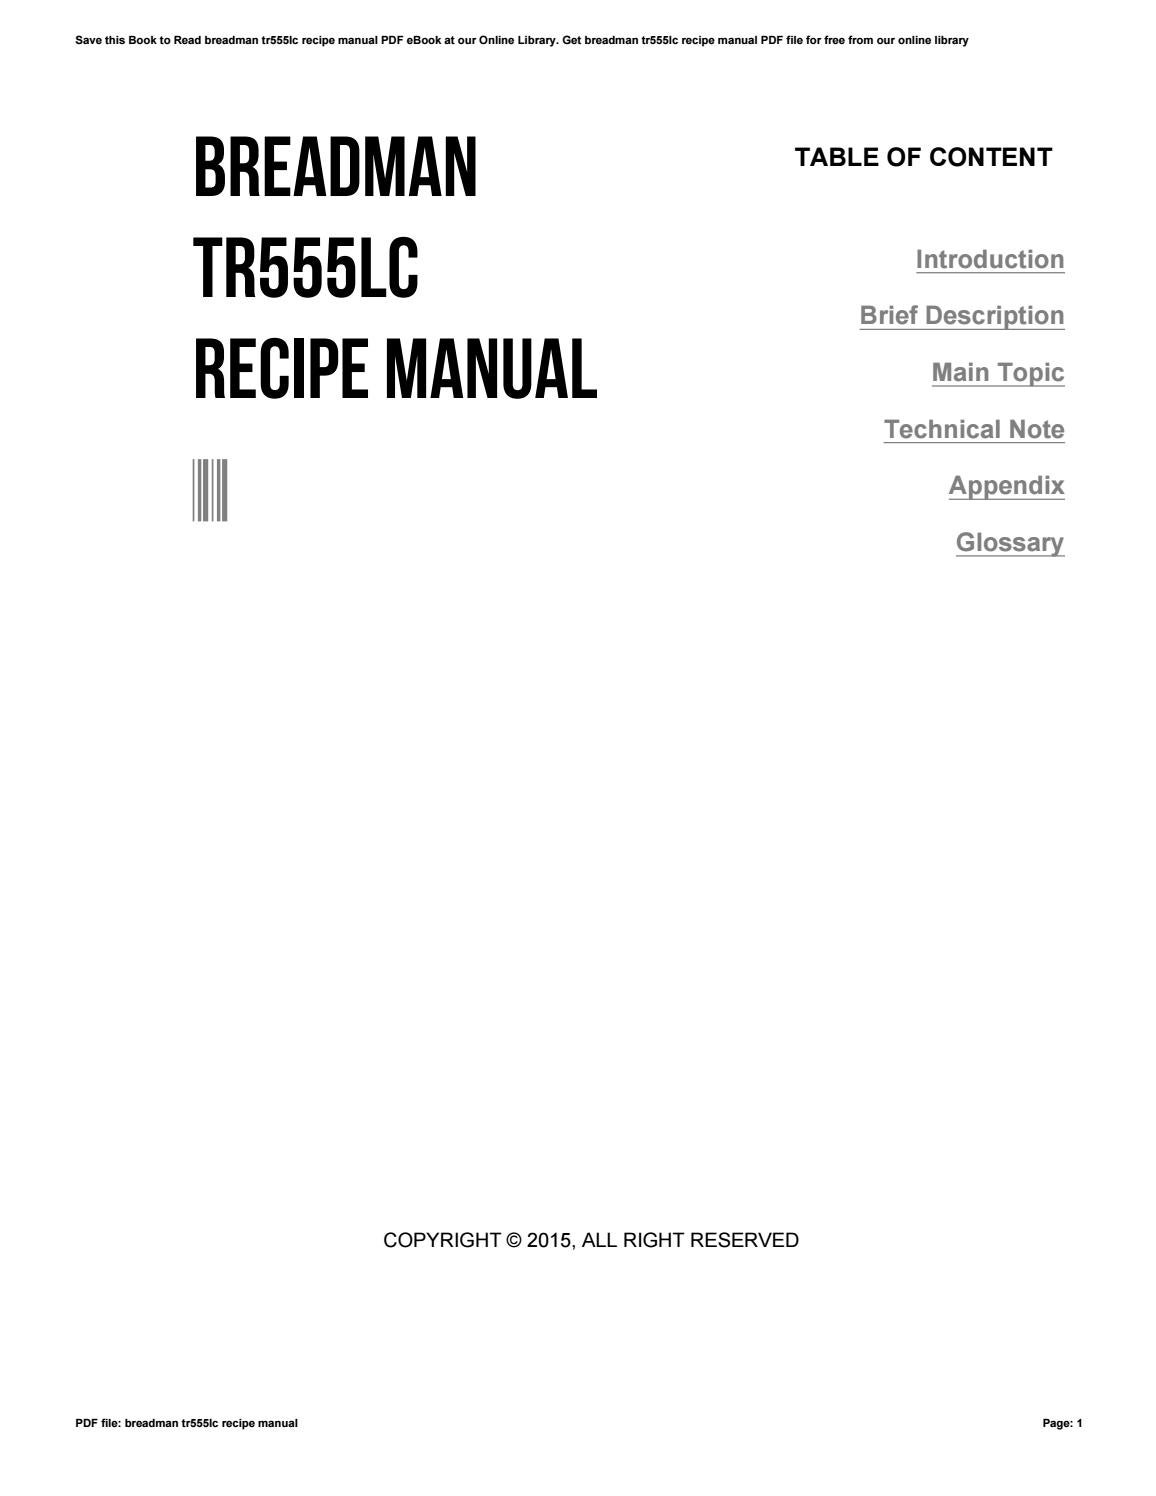 BREADMAN TR555 MANUAL PDF